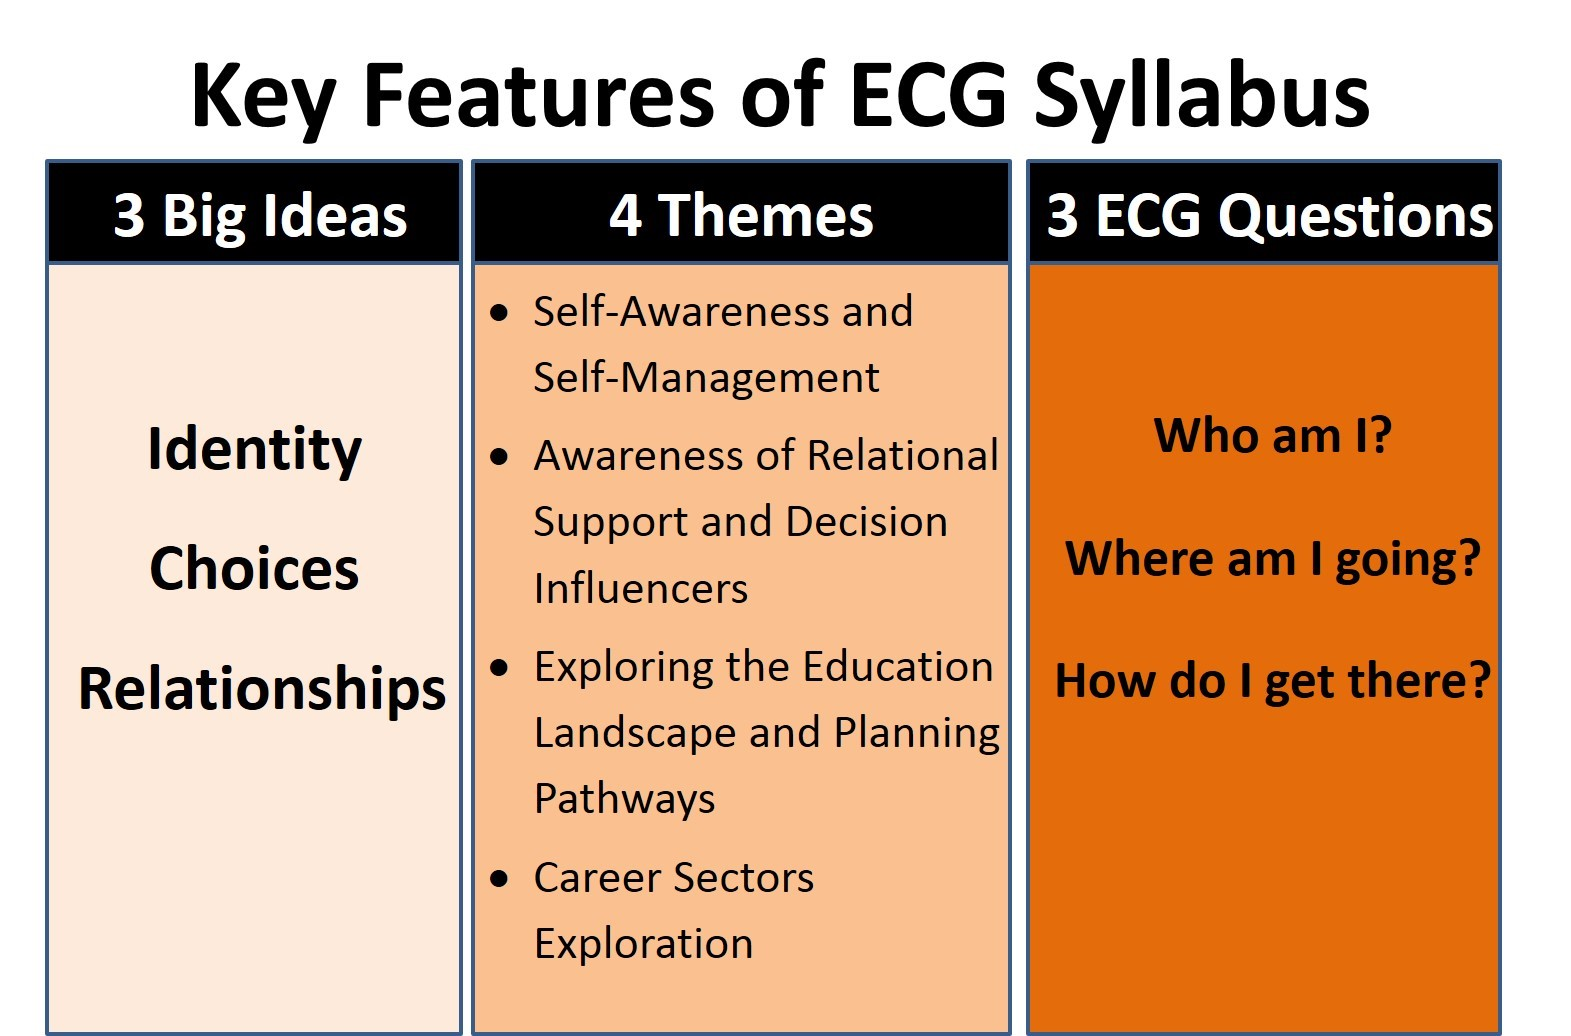 Key Features of ECG Syllabus.jpg